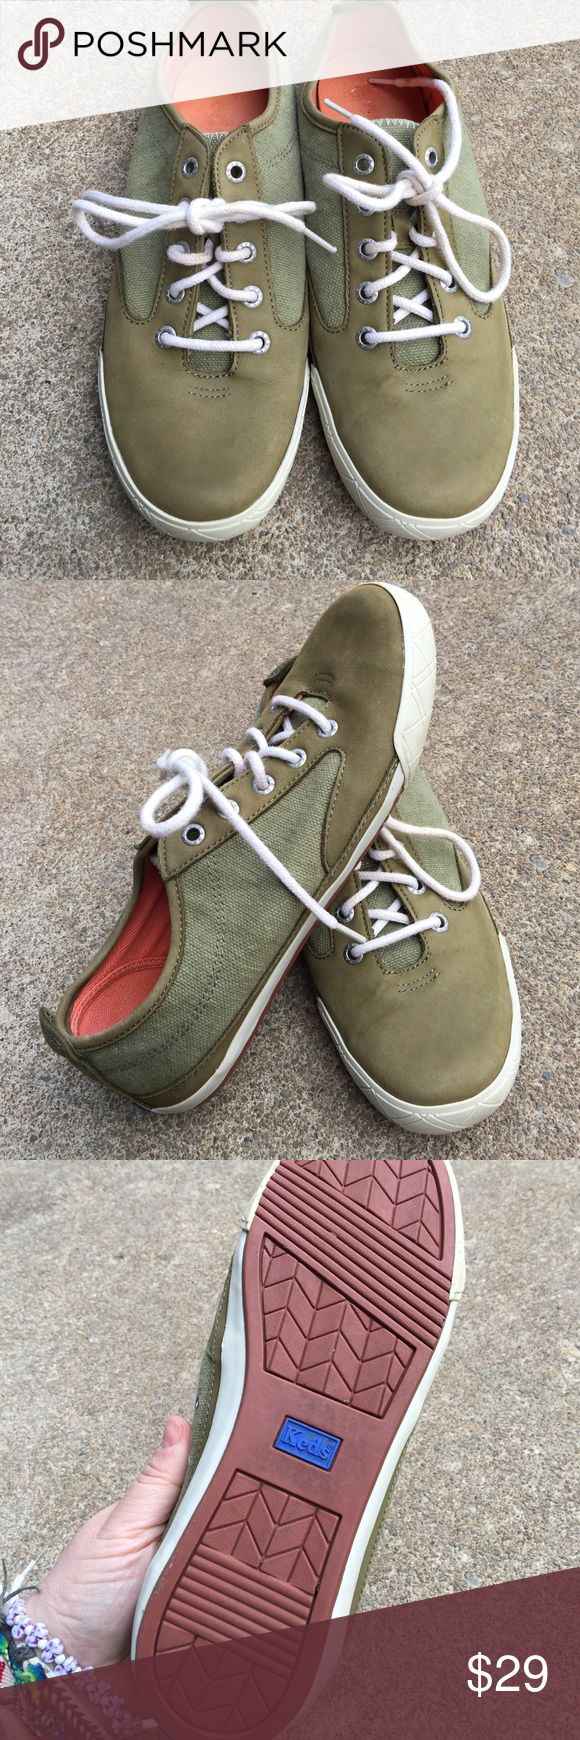 Women's Green Canvas & Leather Keds Sneakers 8.5M Women's Olive Green Canvas & Leather Keds Sneakers 8.5M Awesome Keds Shoes Sneakers